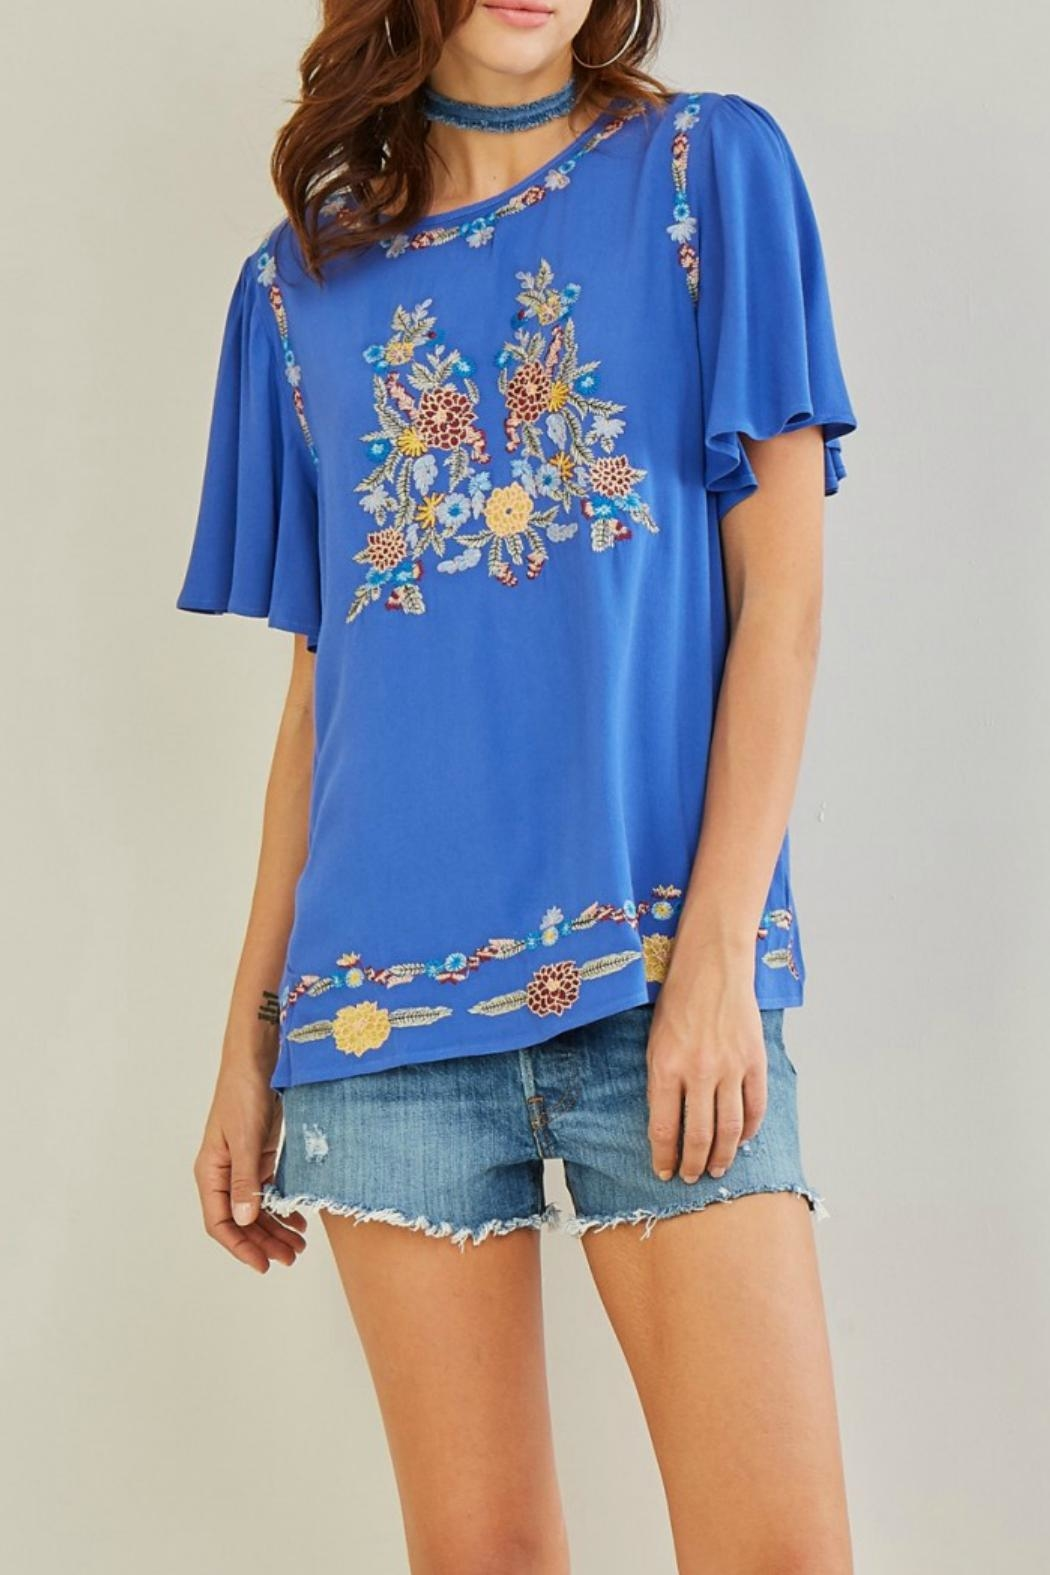 Entro Embroidered Floral Top - Main Image